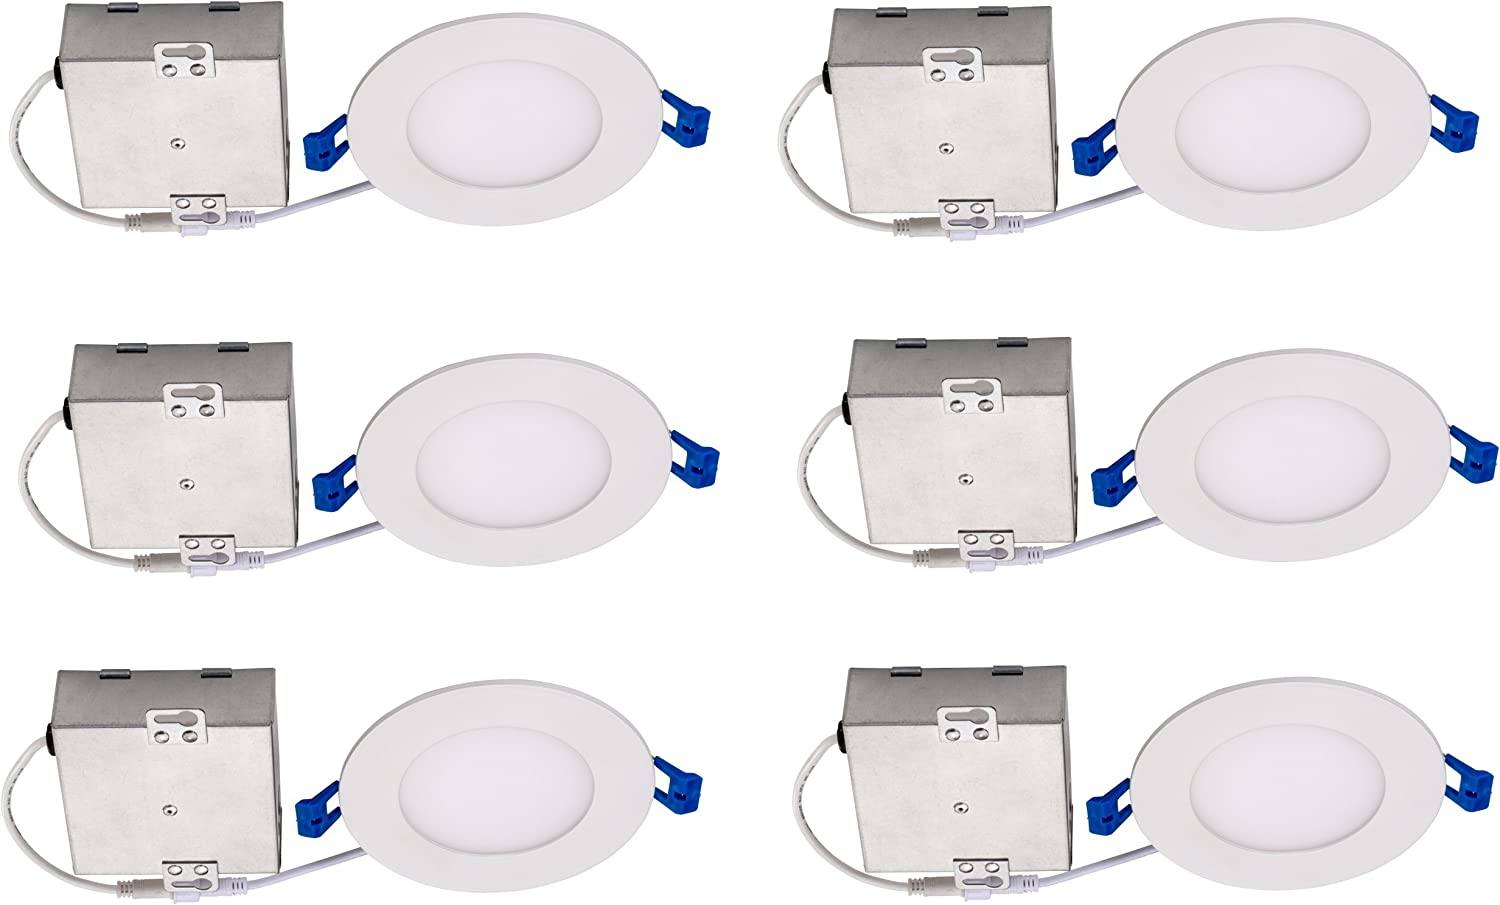 Topaz Lighting (Pack of 6) 77229 9W Slim 4  Dimmable Recessed Ceiling Downlight, 3000K, White, Easy to Install, Save Time and Money, Energy Efficient LED Lighting